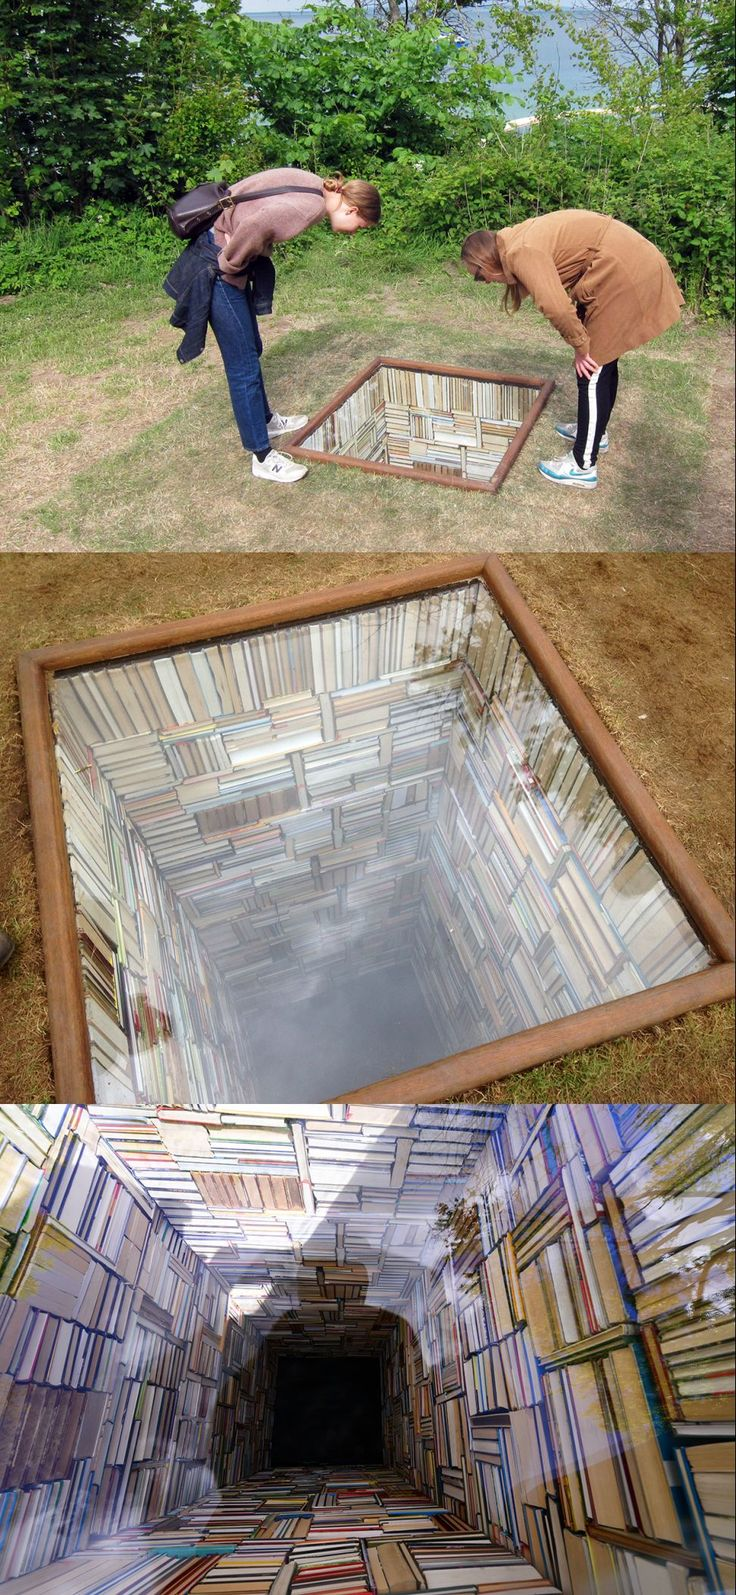 A Library That Plummets into an Abyss by Susanna Hesselberg for Sculpture by the Sea